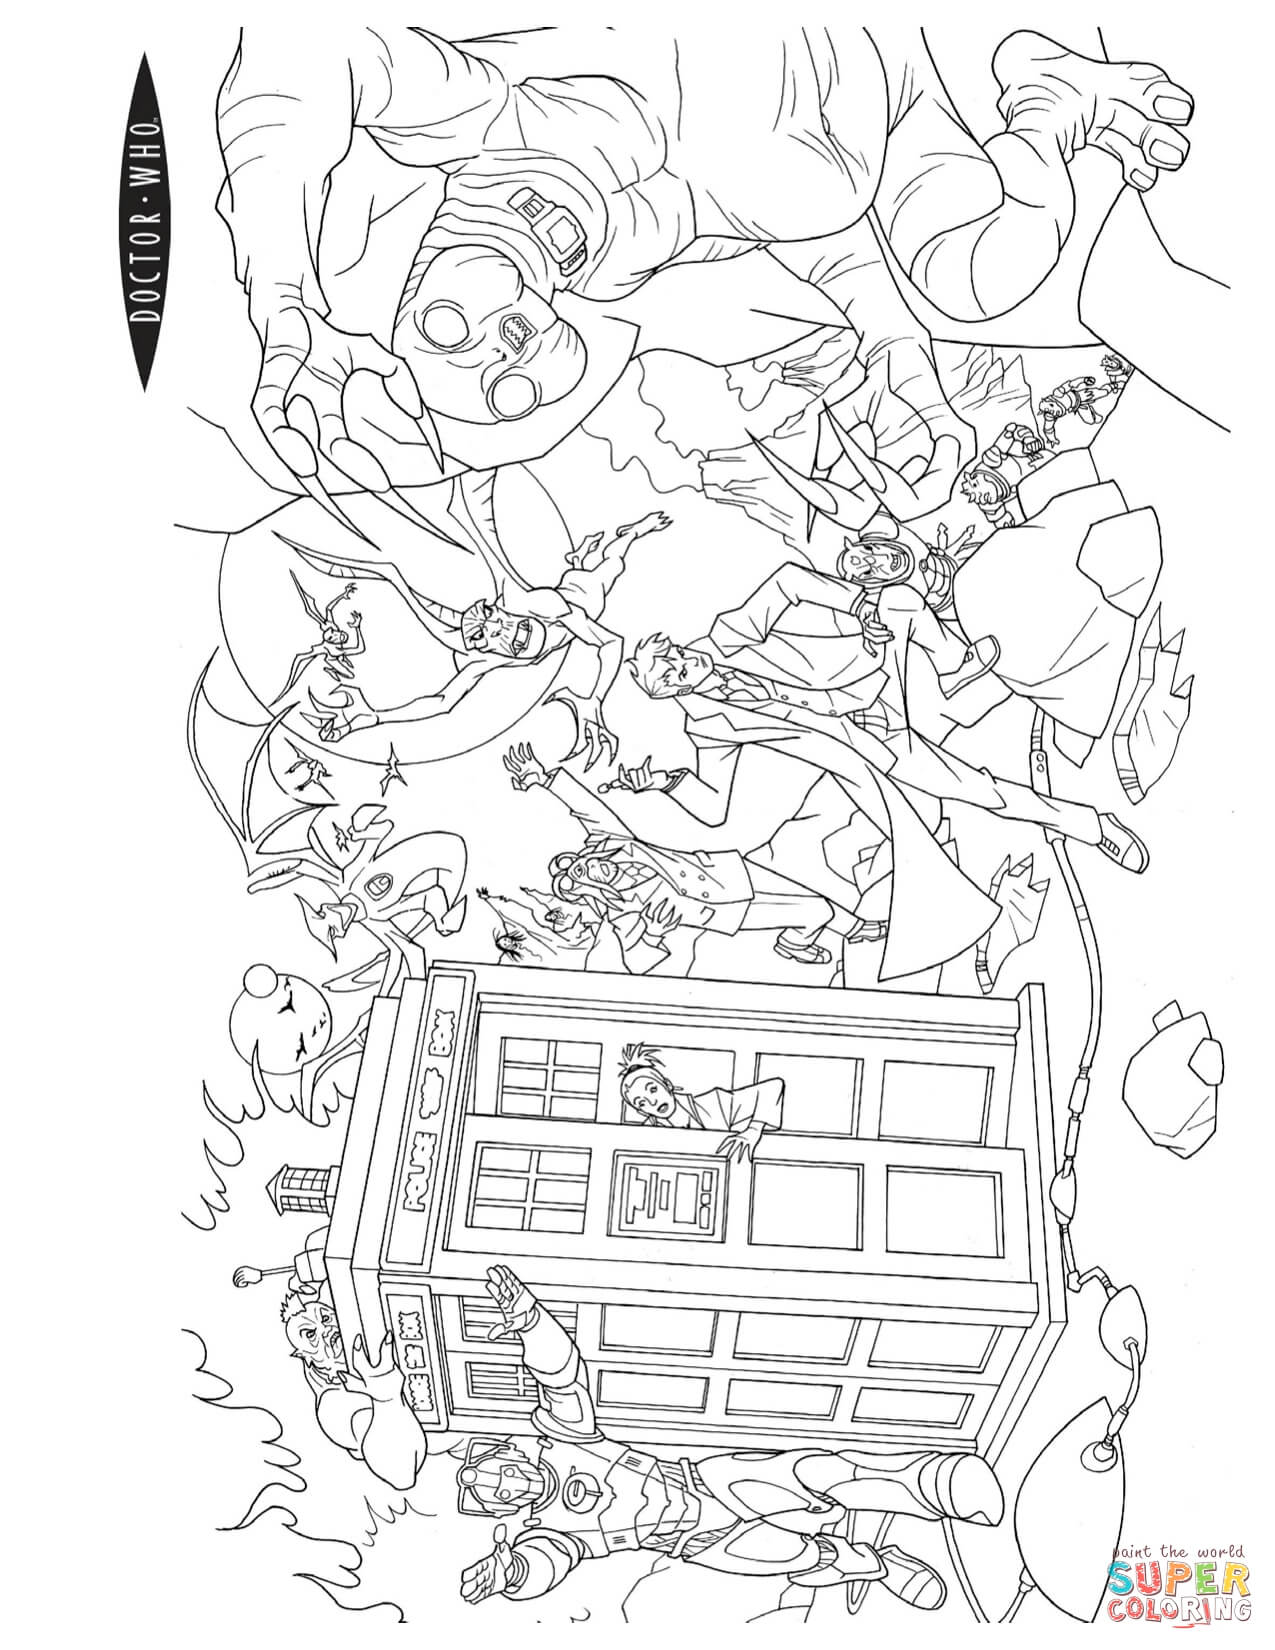 Action Scene From Doctor Who Coloring Page